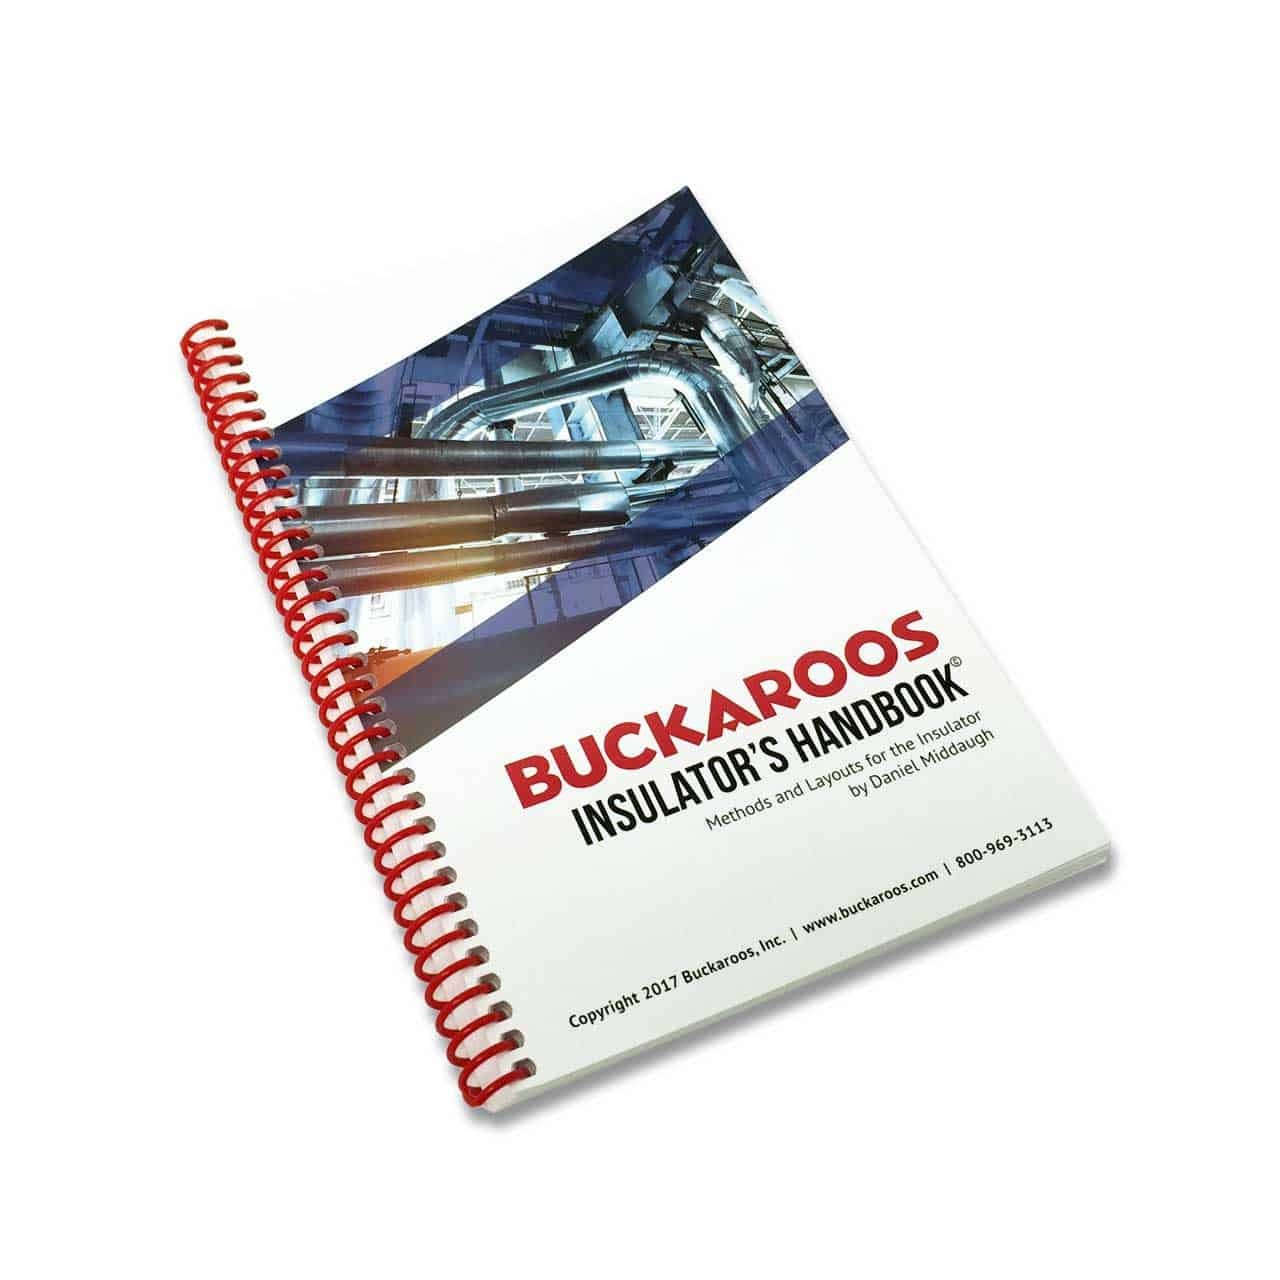 T 24a Buckaroos Insulators Handbook Inc Piping Layout Manual Insulator With Essential Layouts And Guidelines